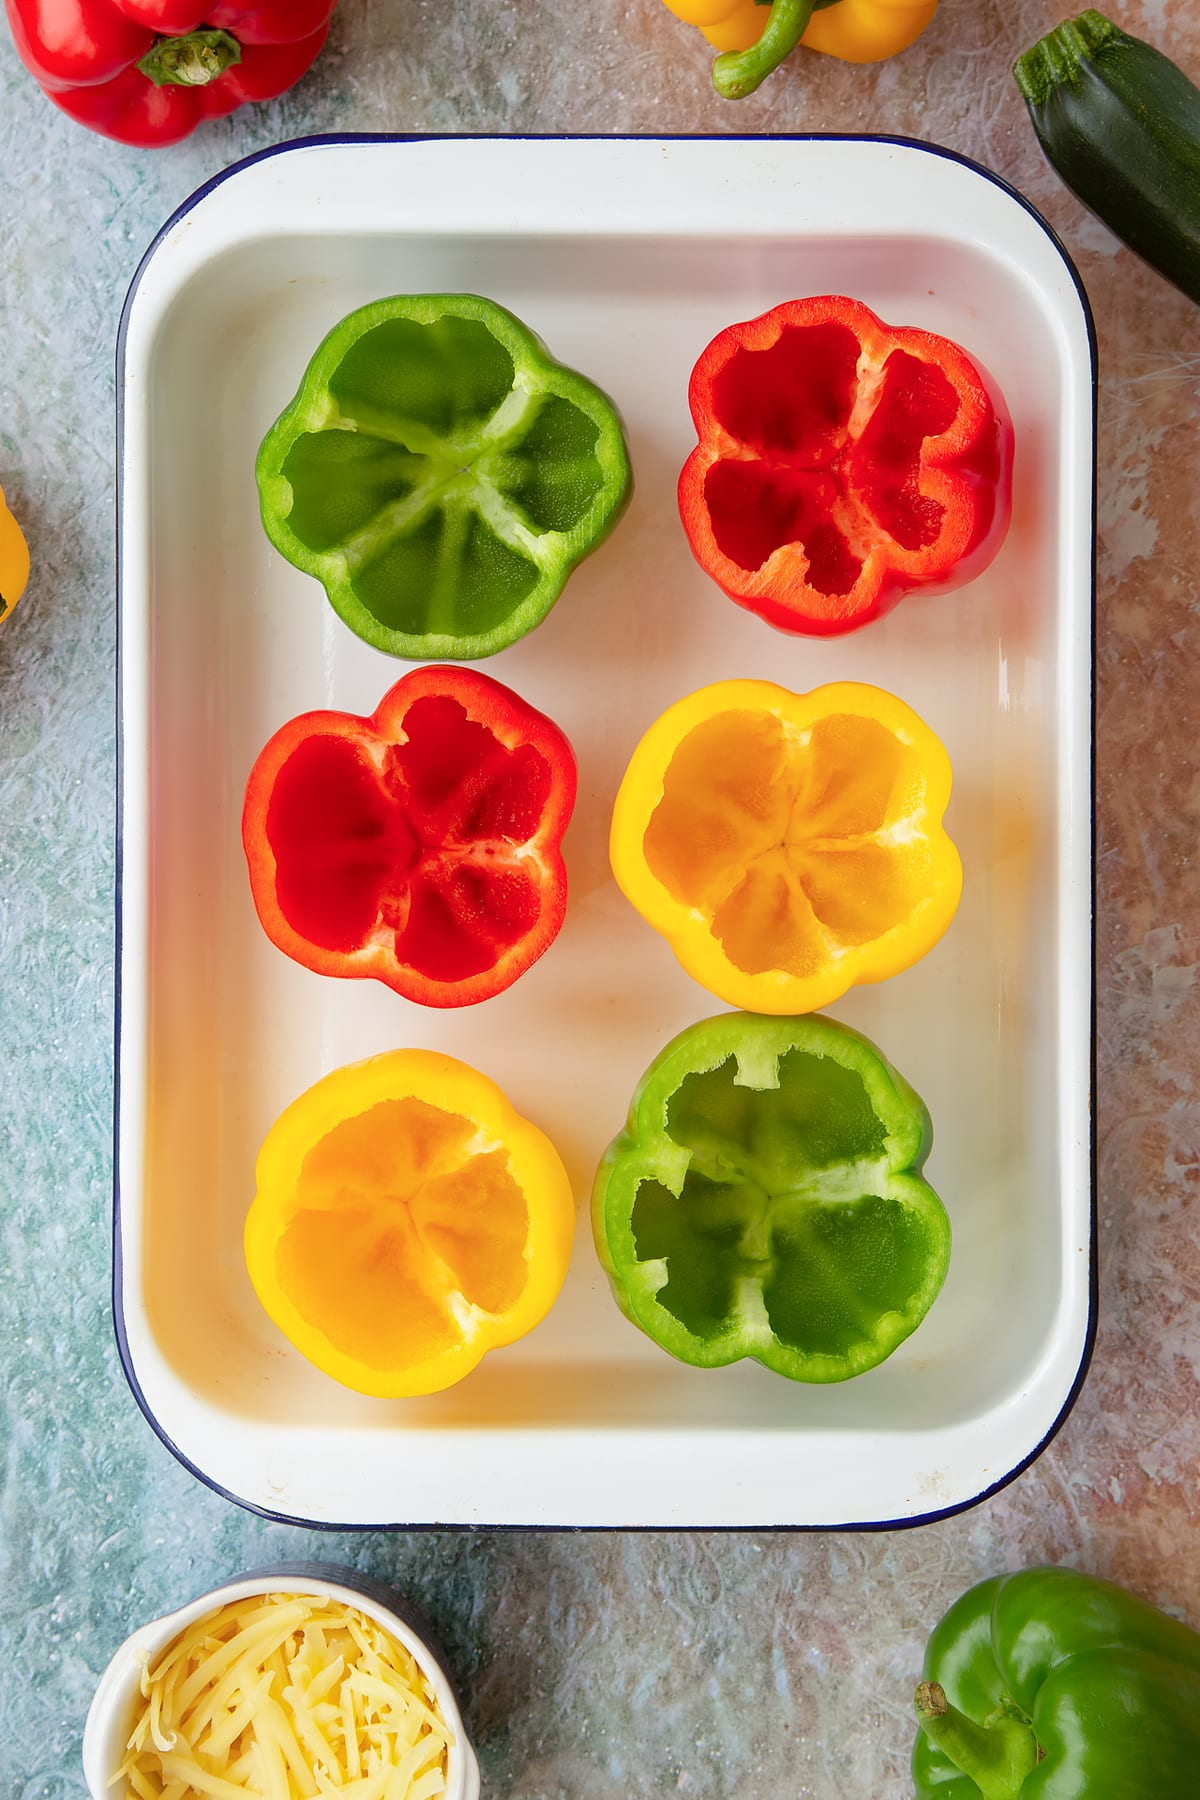 Six red, green and yellow peppers in a white roasting tray with their tops cut off and seeds removed. Ingredients to make baked bean stuffed peppers surround the tray.